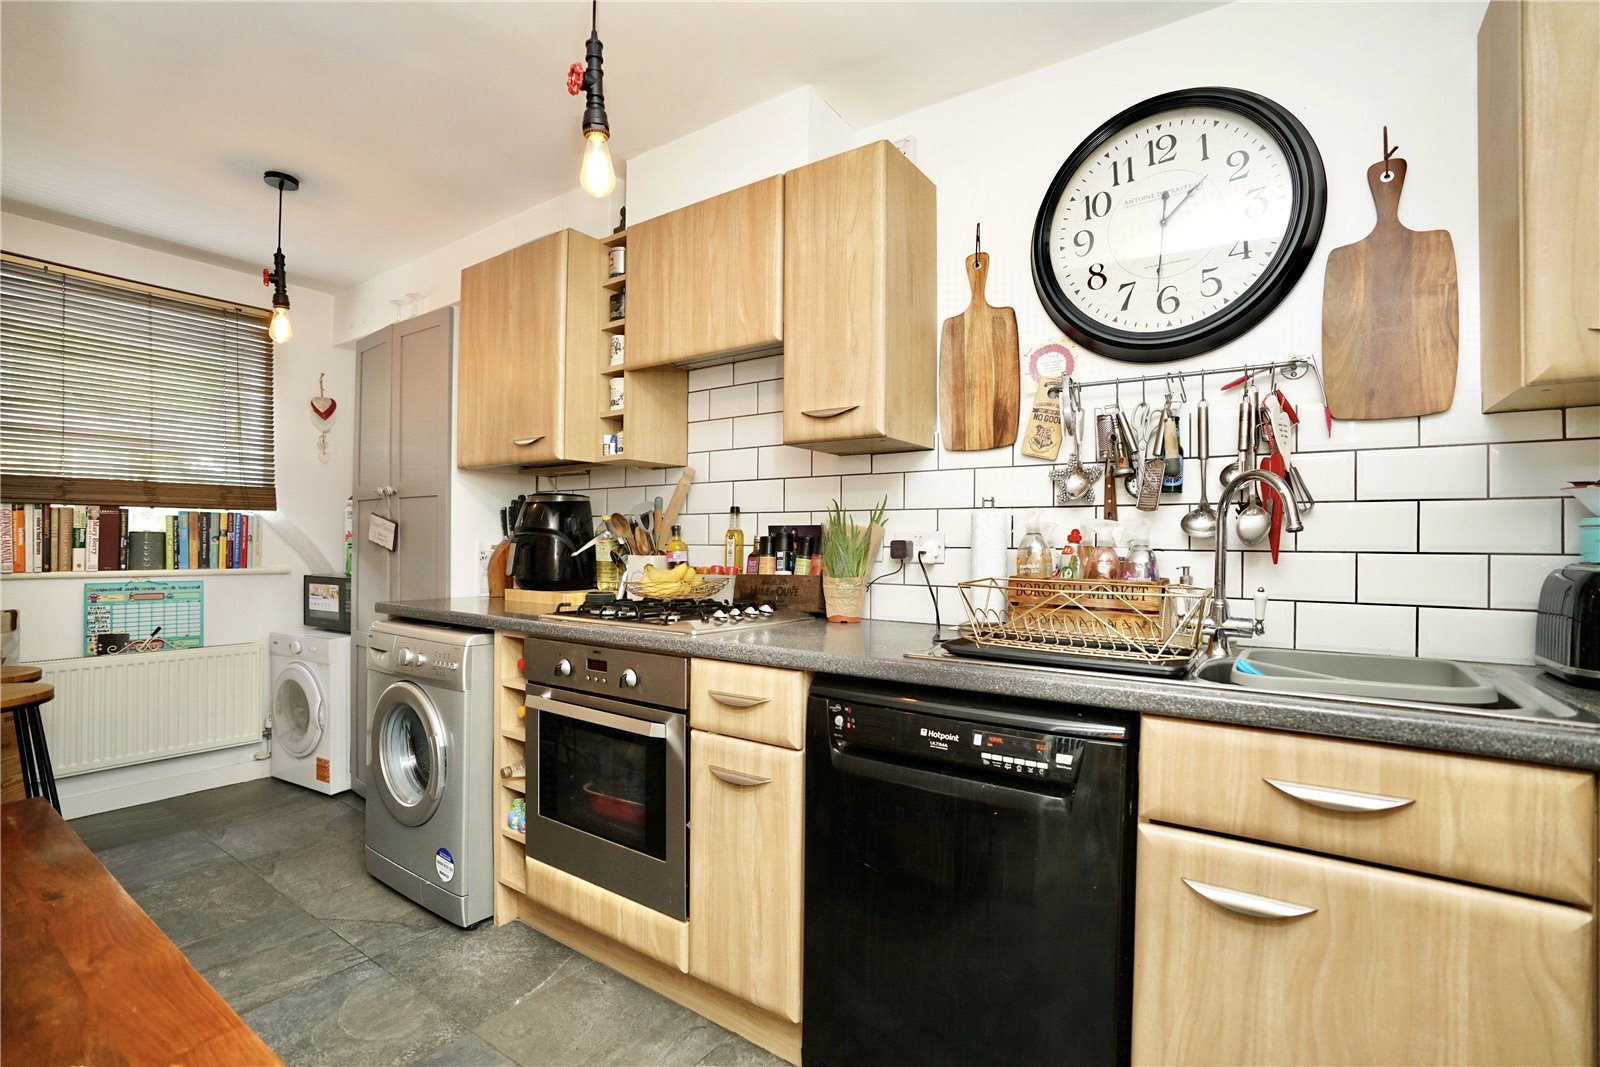 4 bed house for sale in Linton Close, Eaton Socon 3